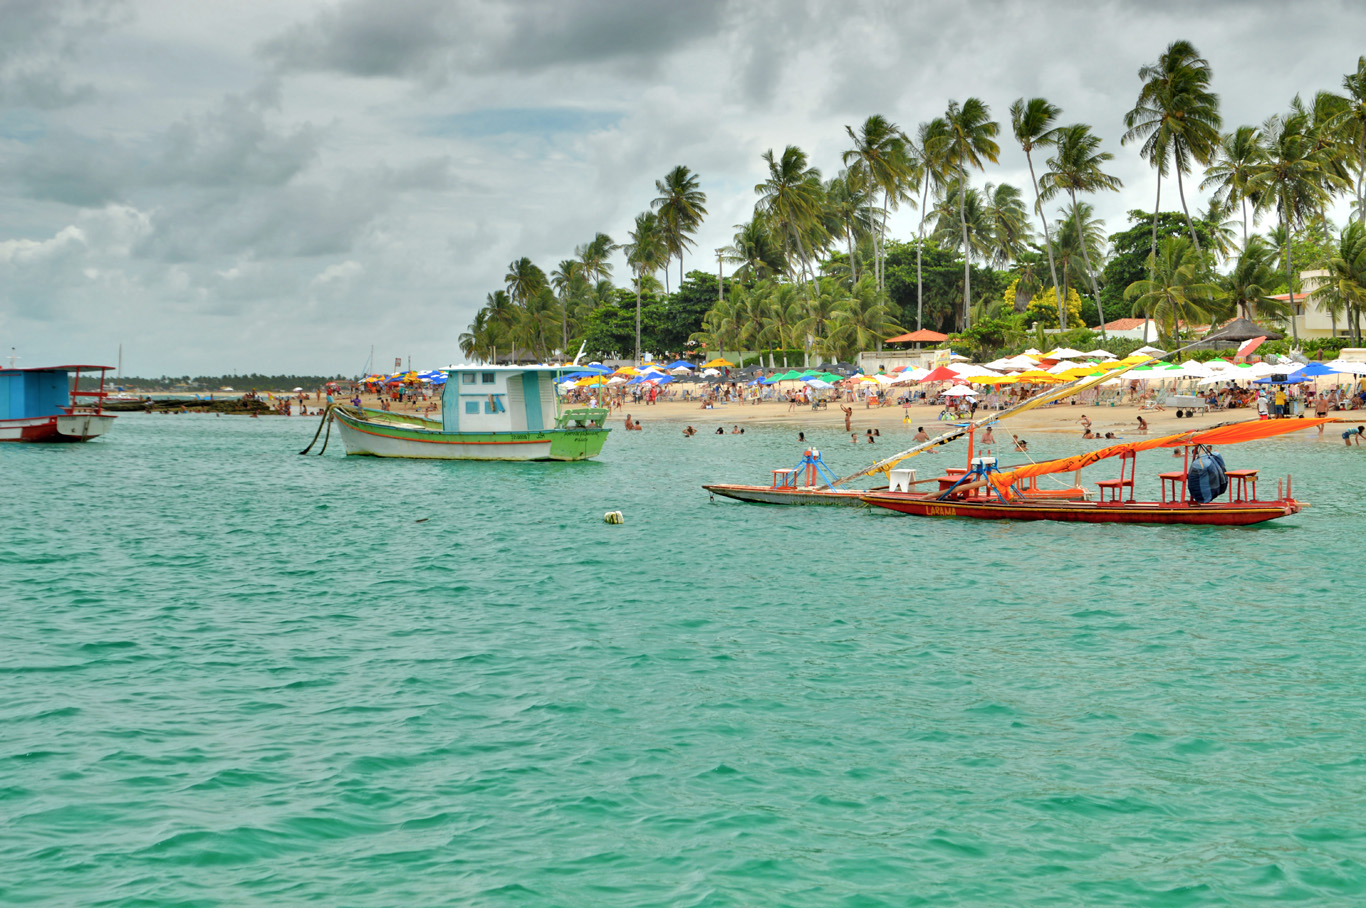 The beach in Porto de Galinhas